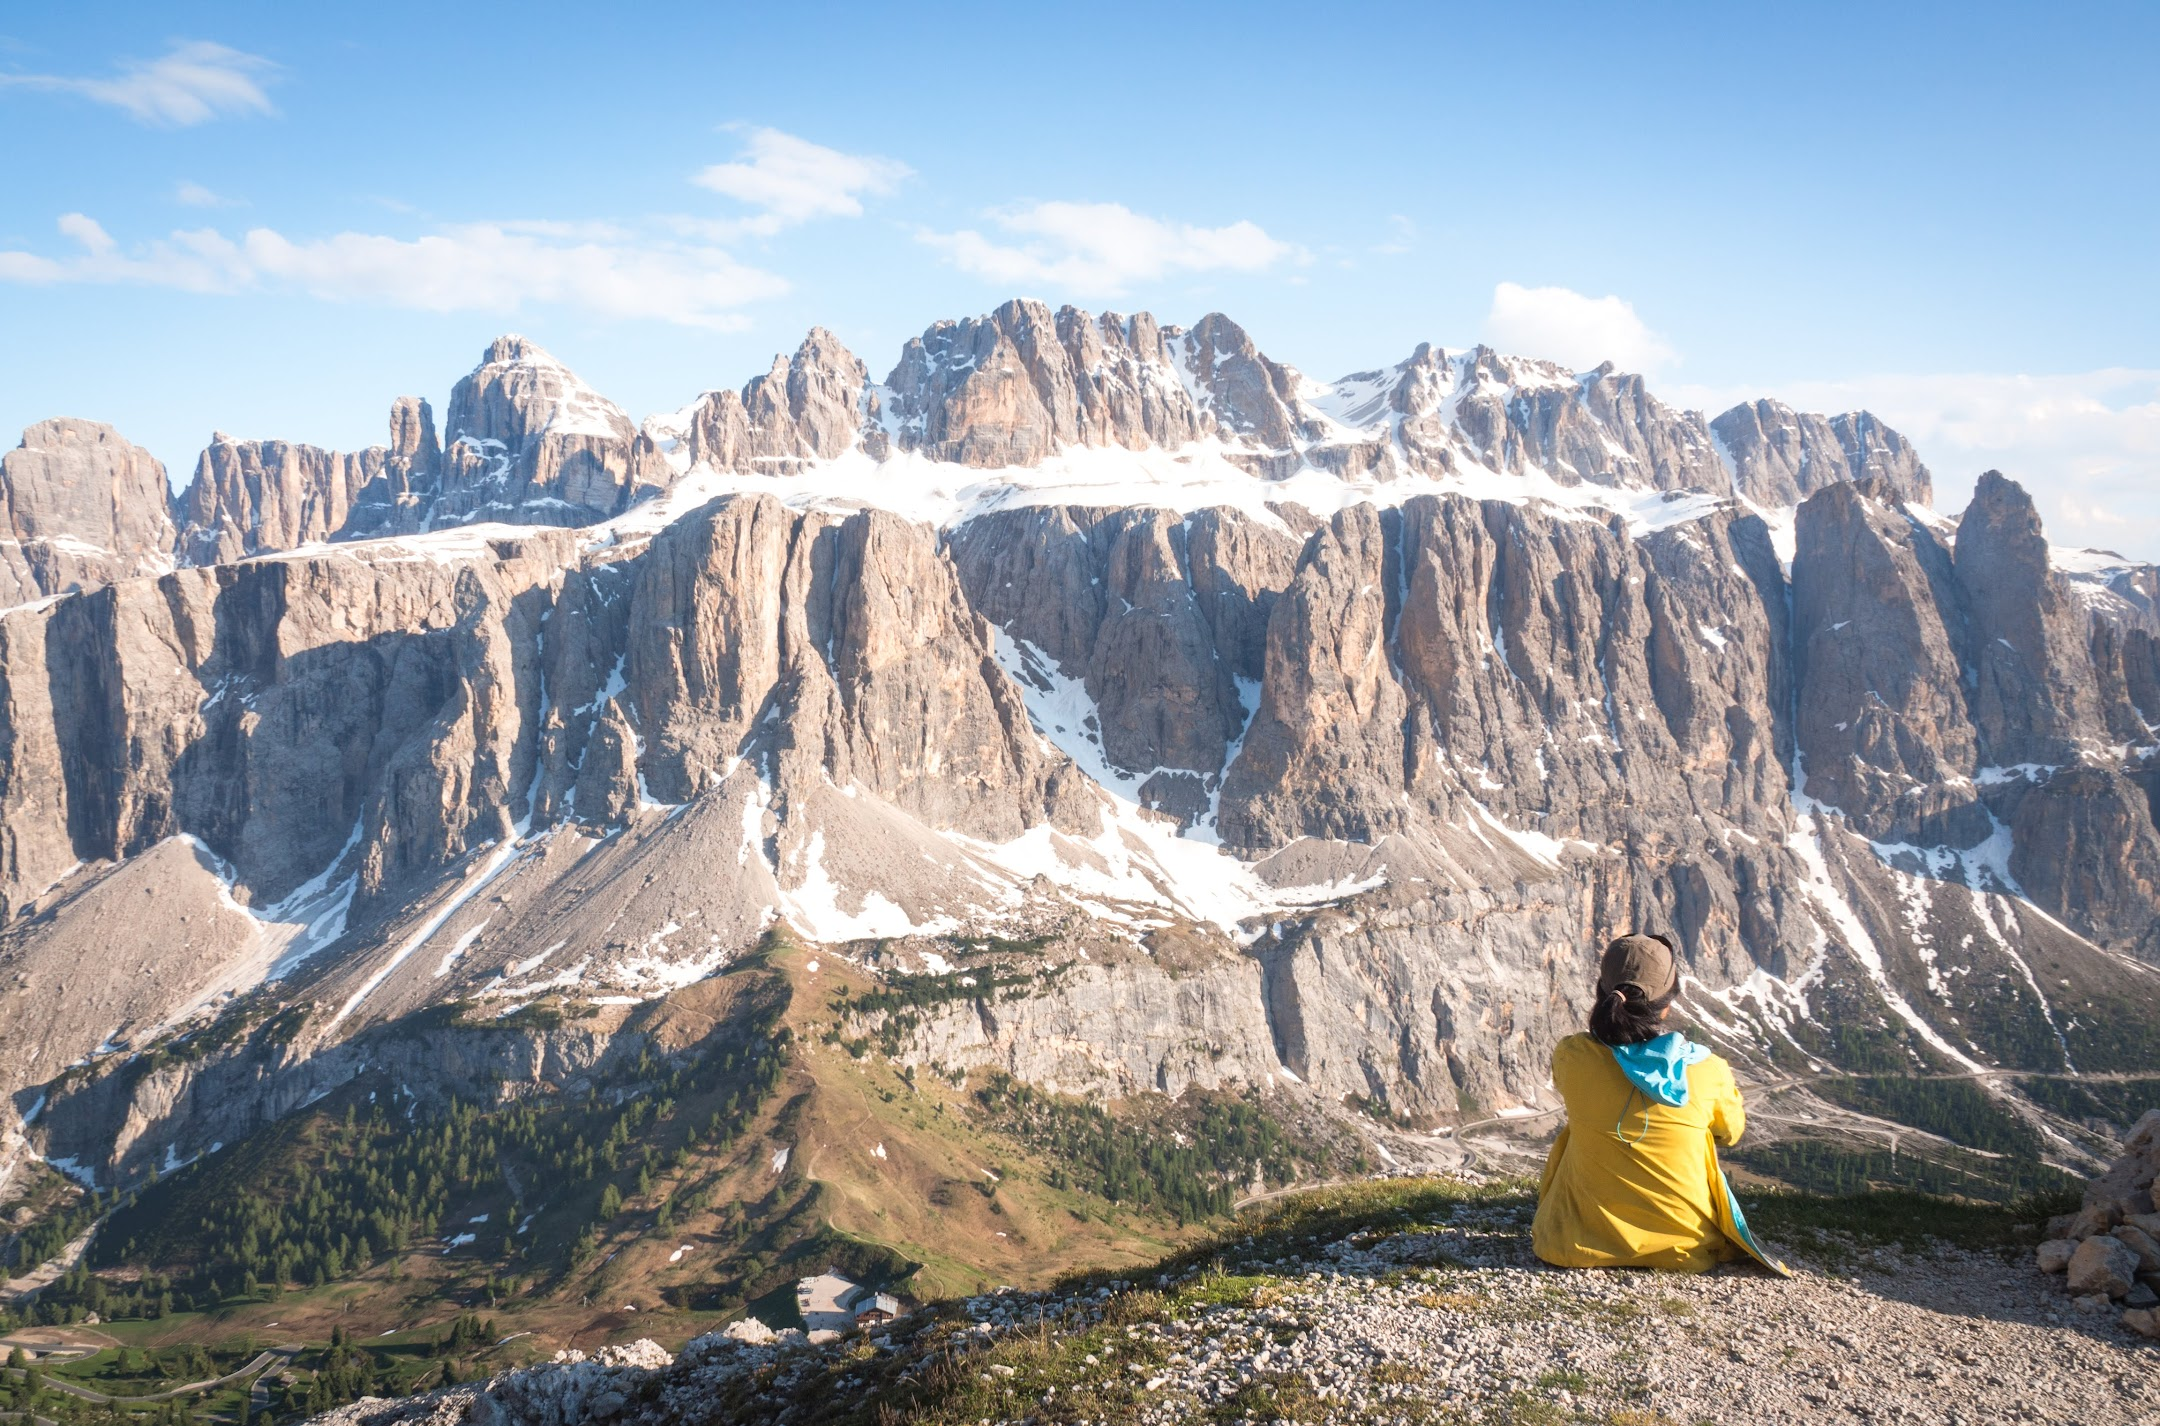 A steep, but short hike from Val Gardena to the cross will get you to this amazing viewpoint.